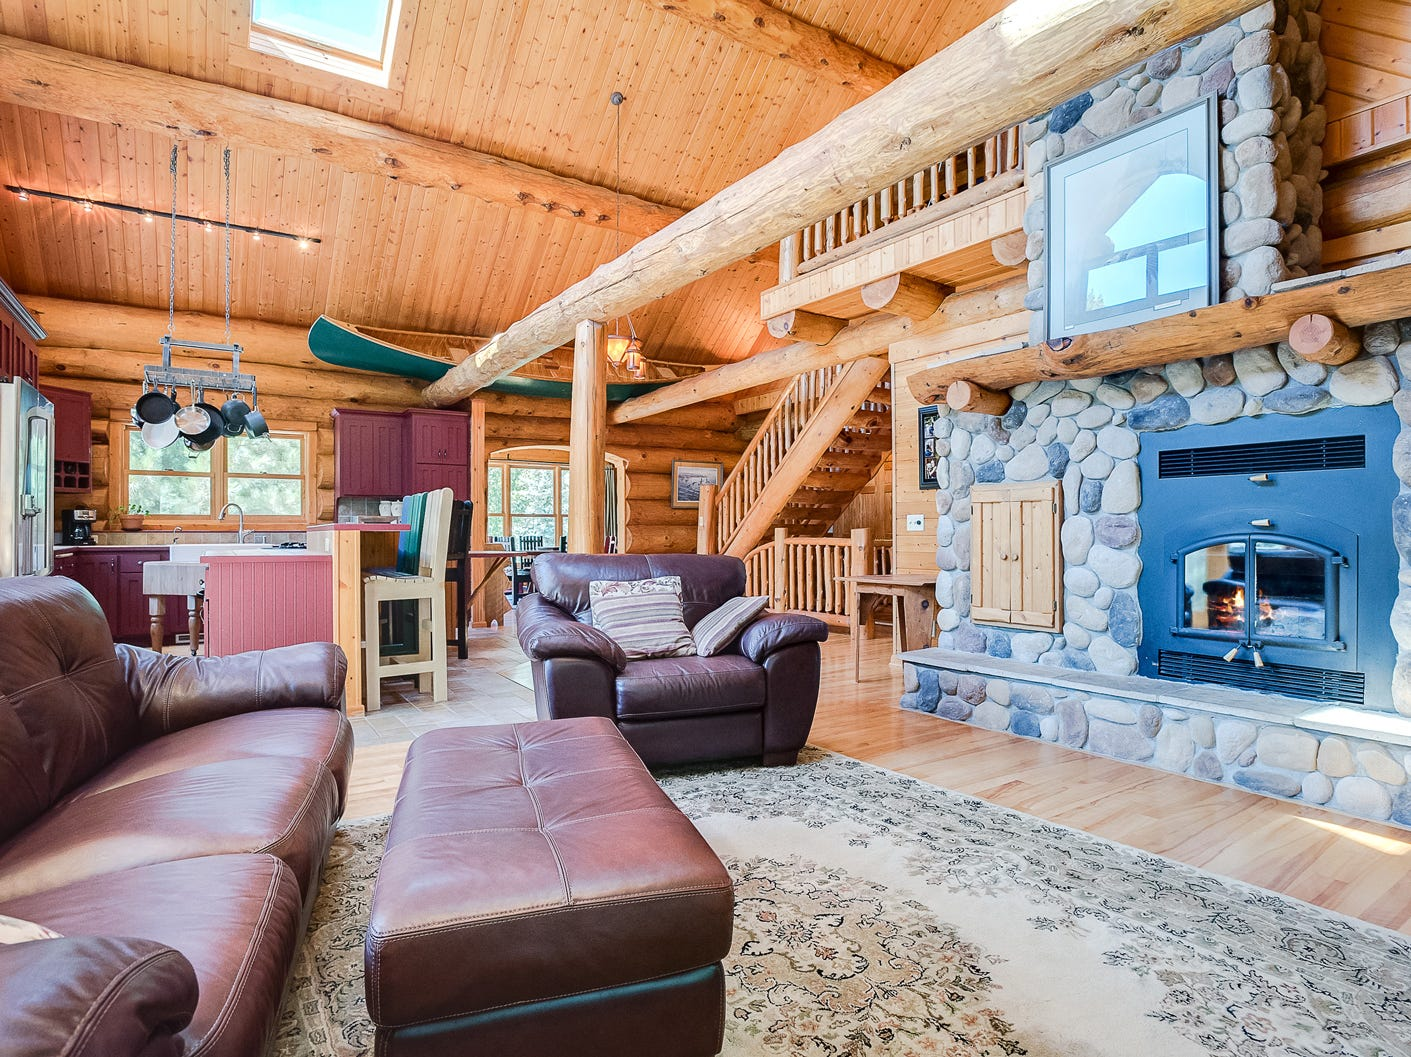 The great room offers spectacular views of the outdoors as well as the loft near the entrance of the home.